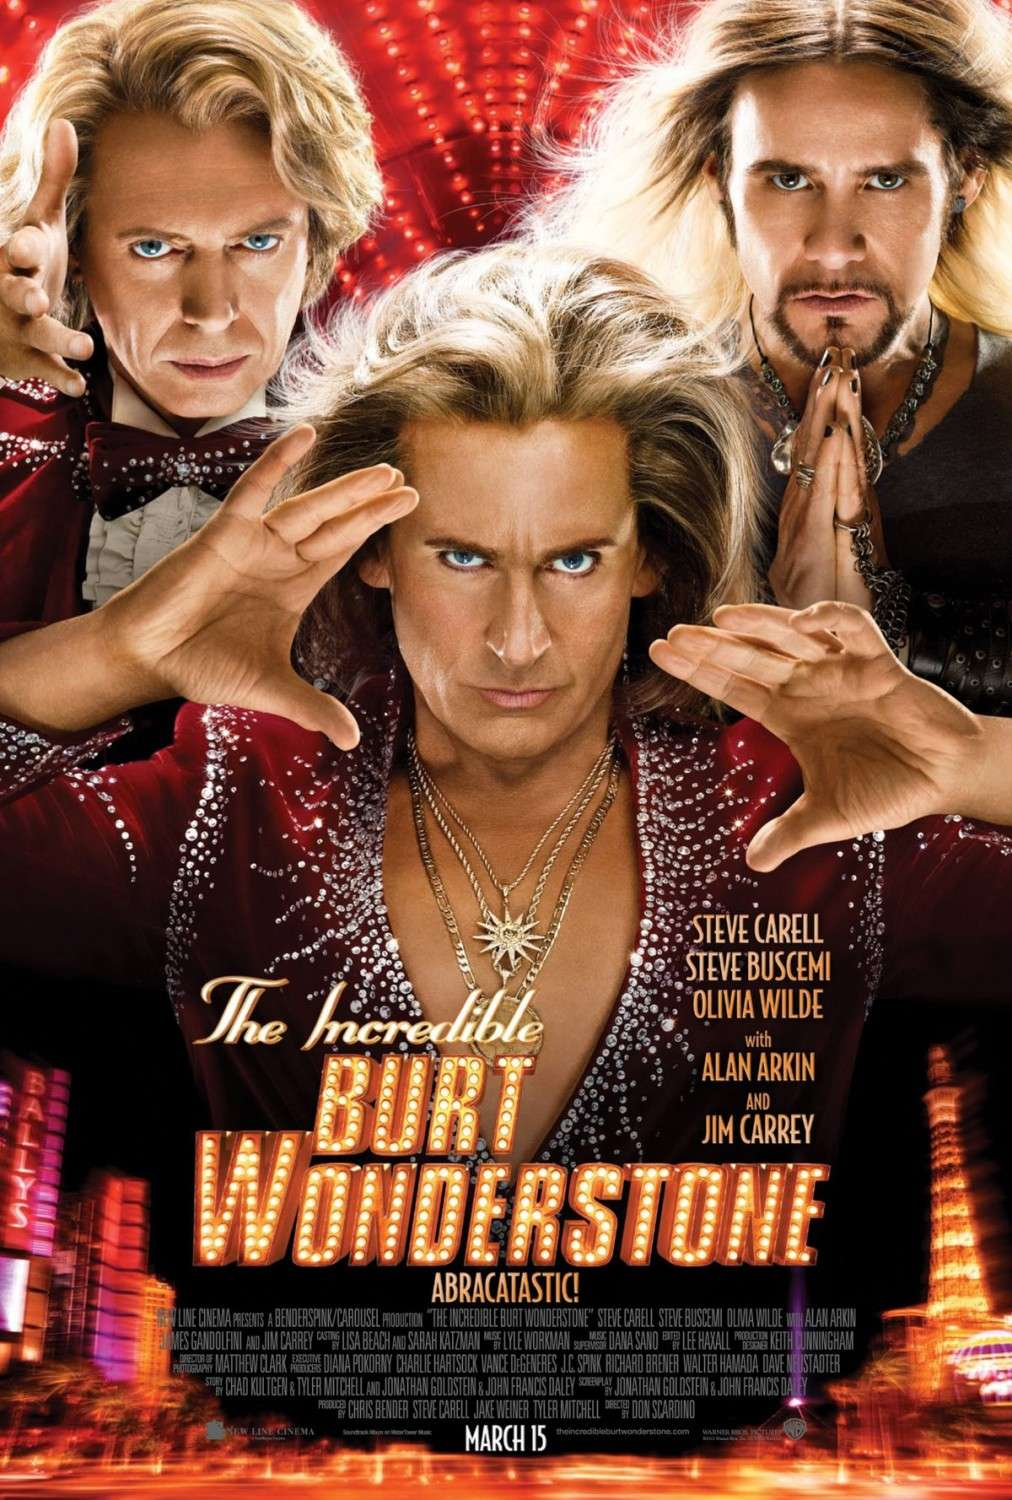 CONTEST: Win The Incredible Burt Wonderstone Screening Passes